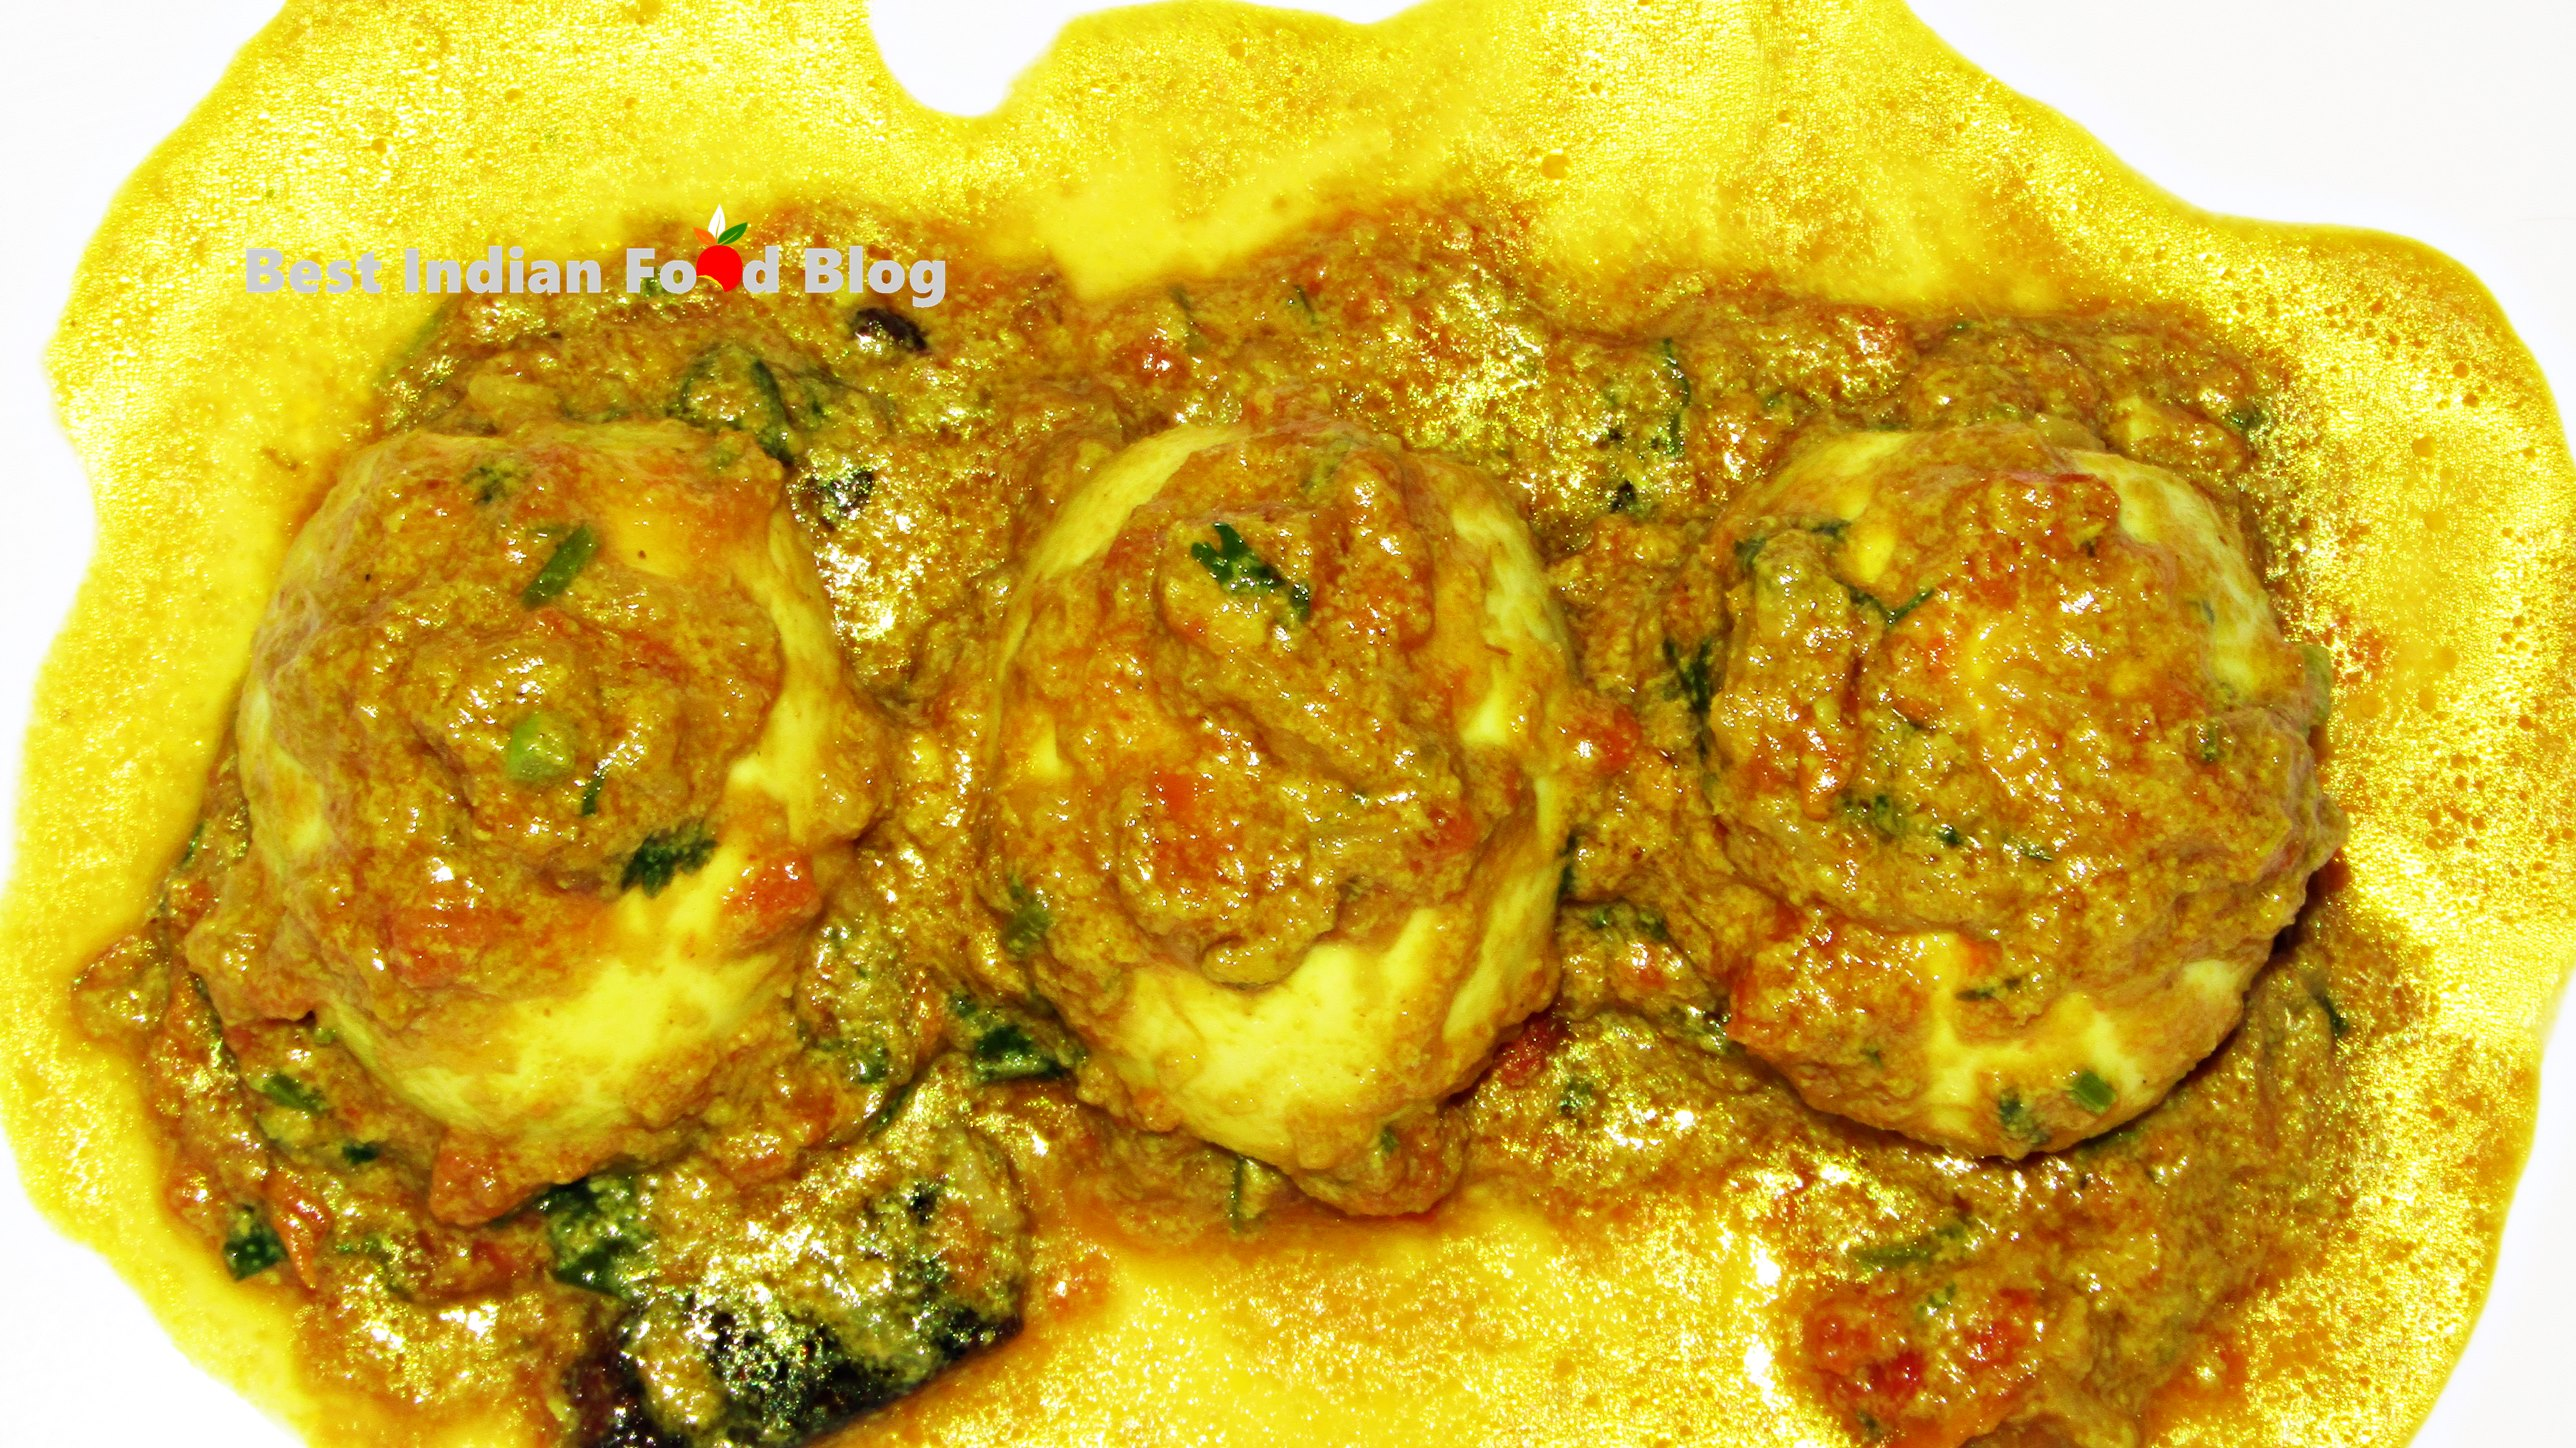 Muttai Curry from Puducherry, India | Best Indian Food Blog